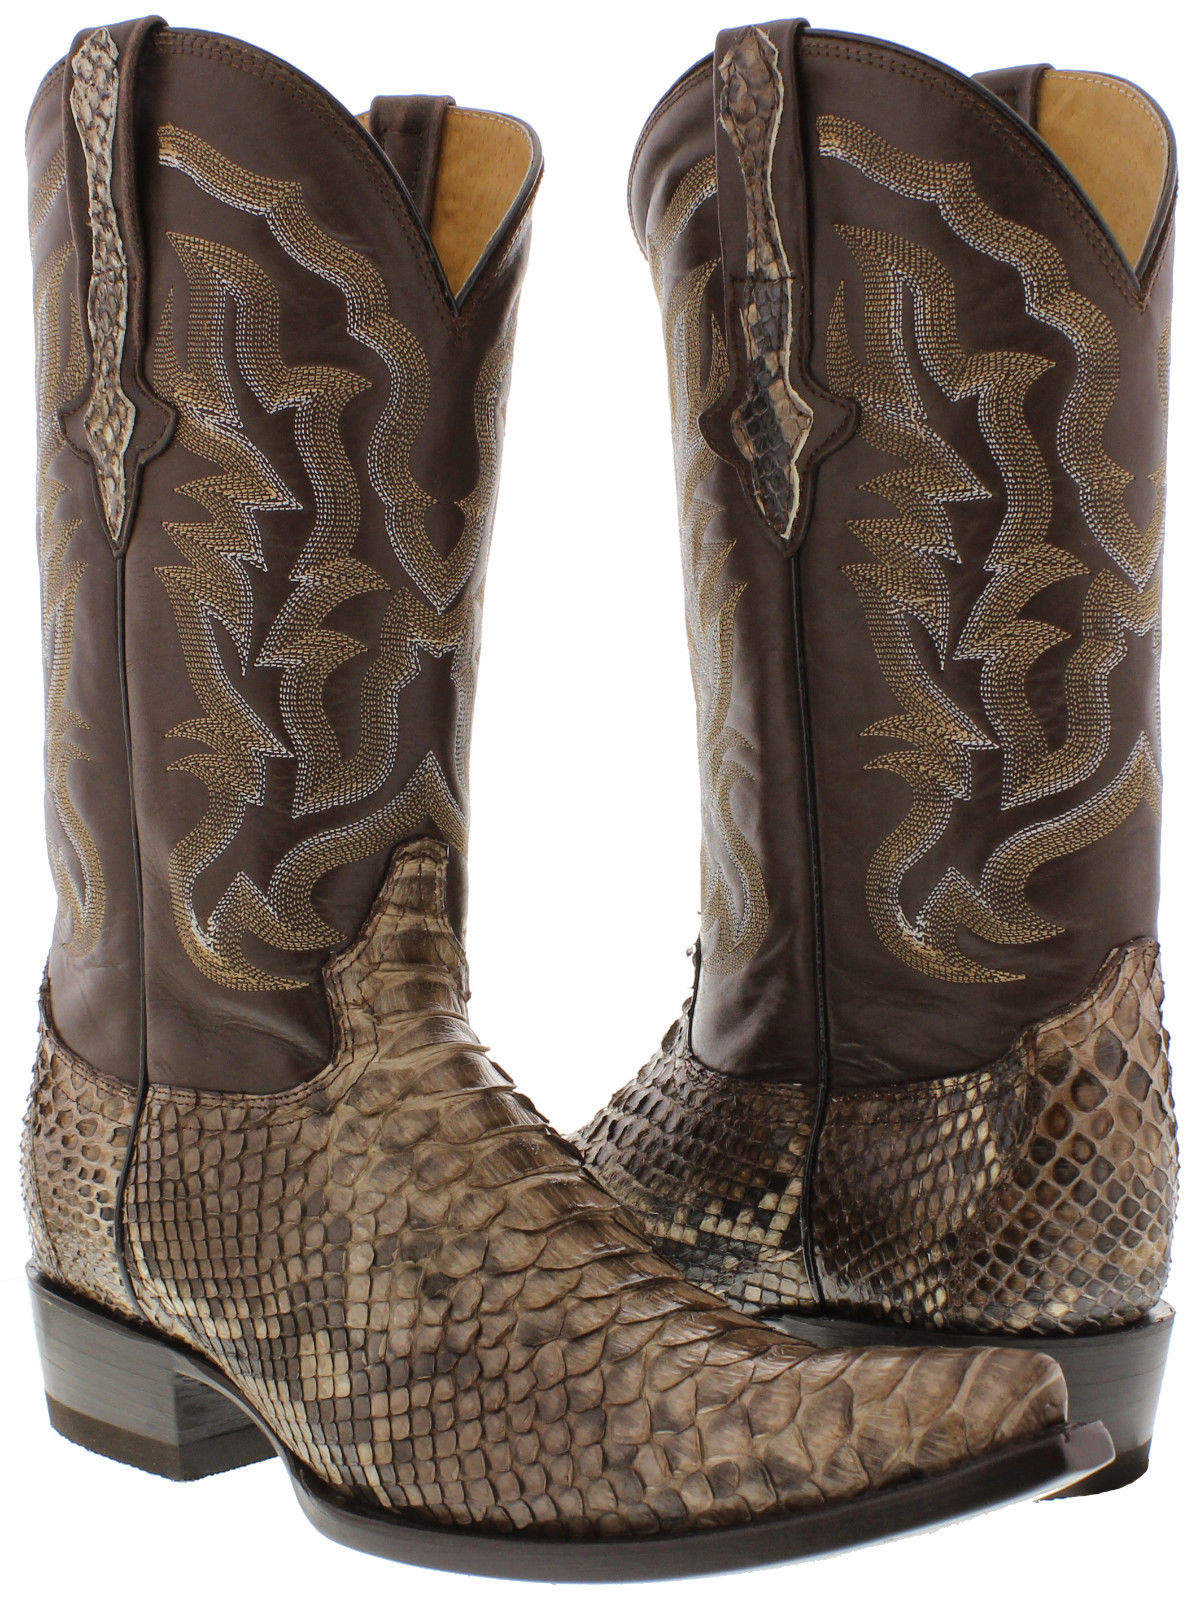 mens all real brown python snake skin exotic leather cowboy boots 3x pointed toe ebay. Black Bedroom Furniture Sets. Home Design Ideas